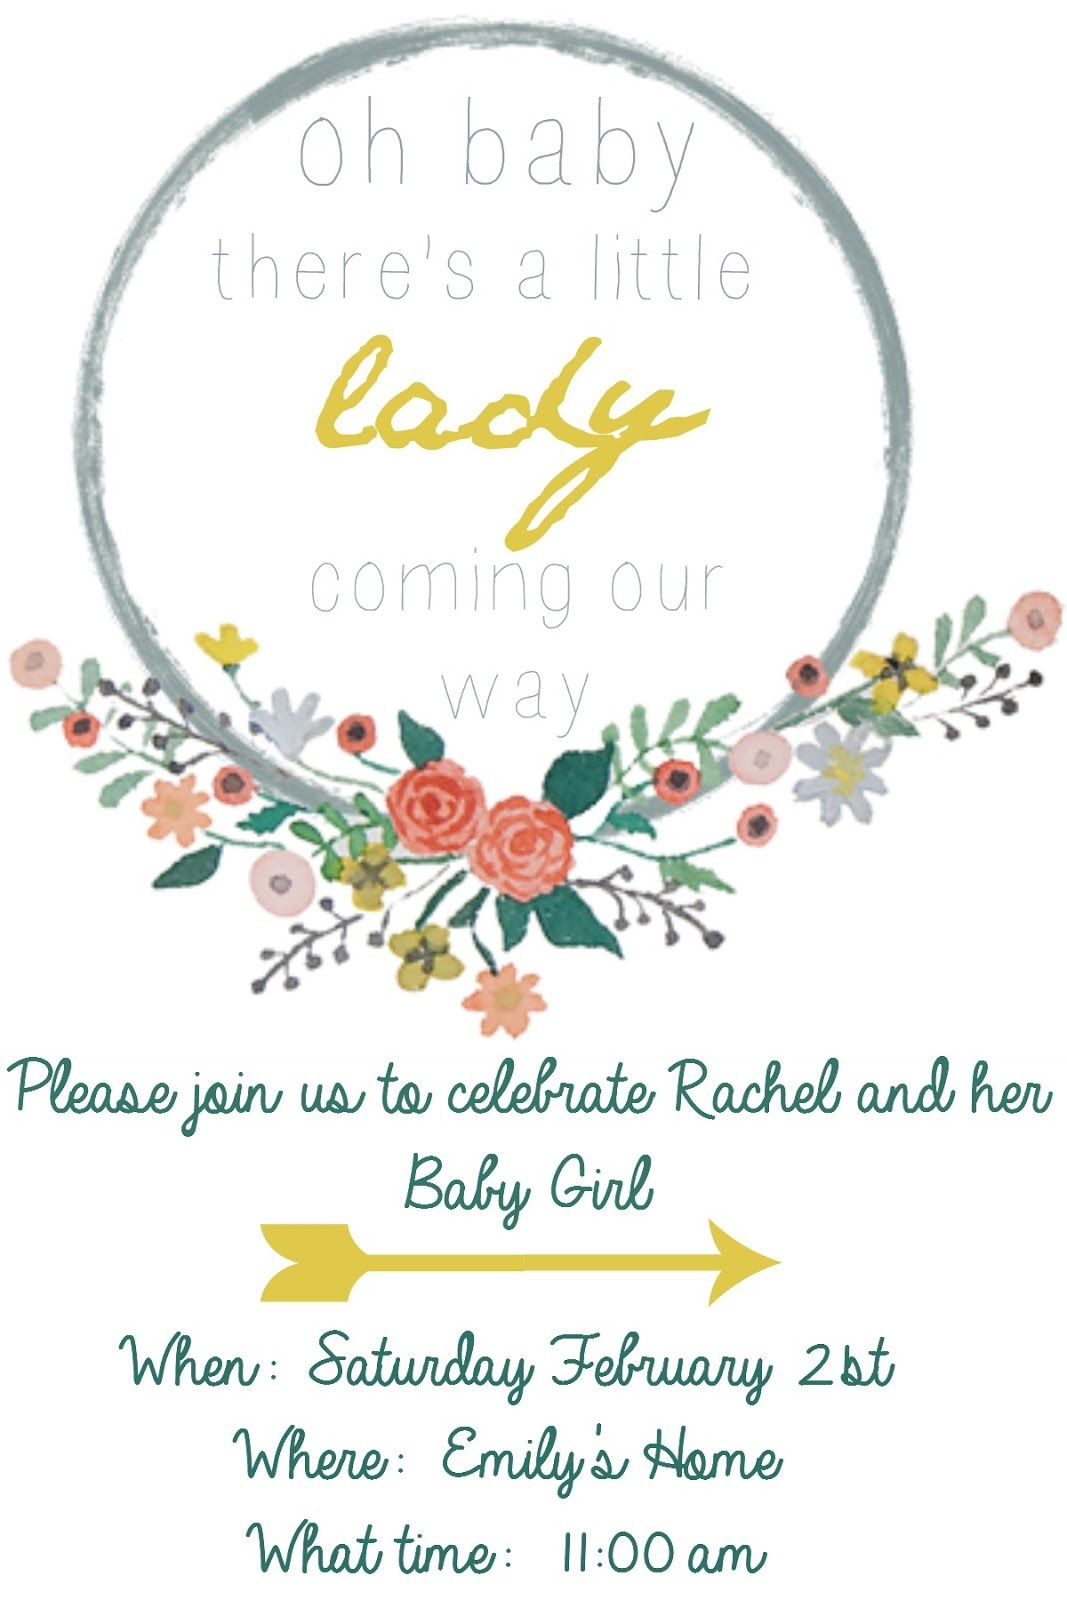 Emmy In Her Element Free Baby Shower Invitation Template And Floral Wre Free Baby Shower Invitations Printable Baby Shower Invitations Shower Invitations Free